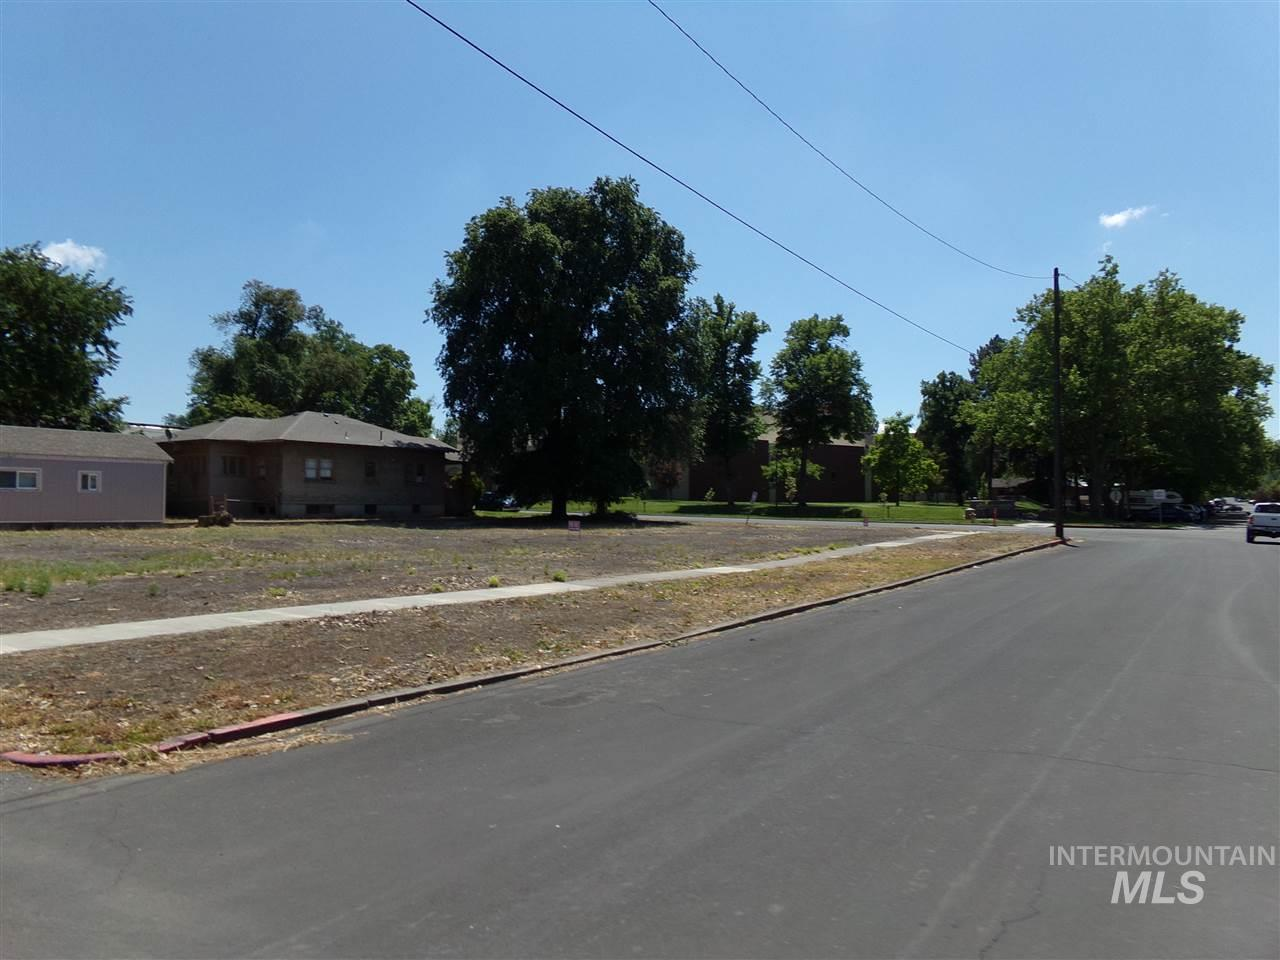 401 7th Ave, Lewiston, Idaho 83501, Land For Sale, Price $155,000, 98731401